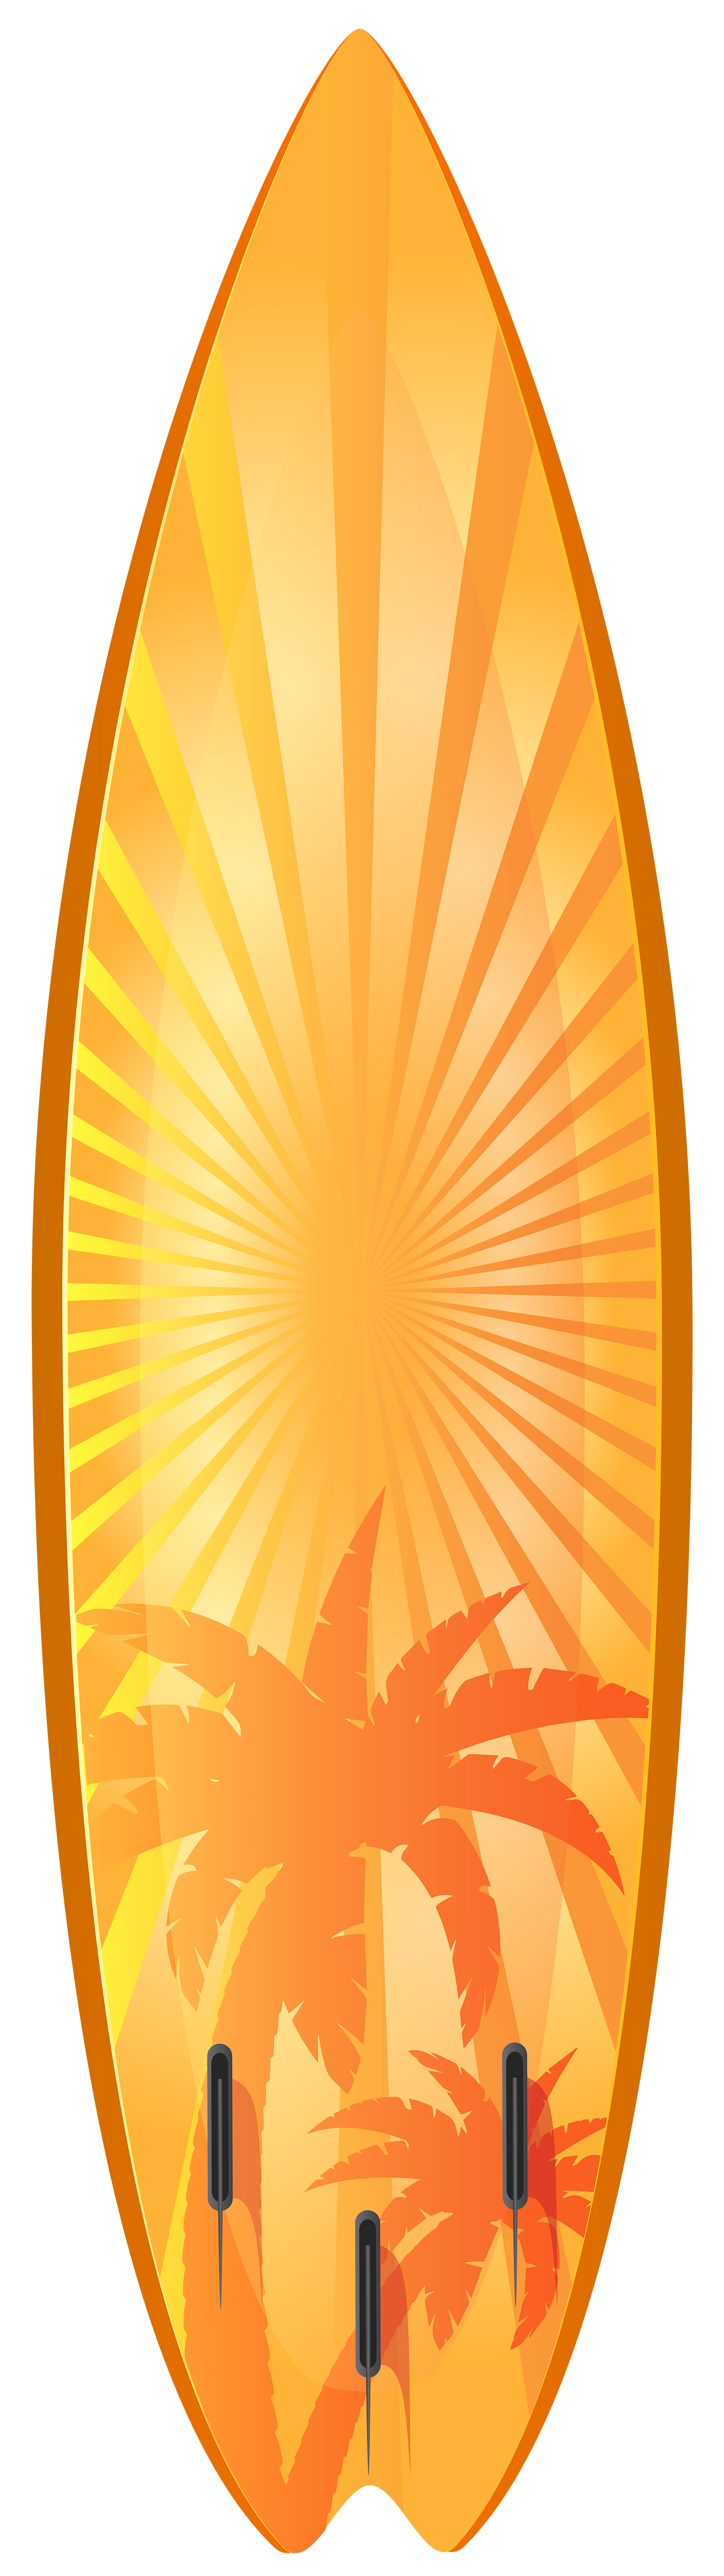 Clipart money orange. Surfboard with palm trees